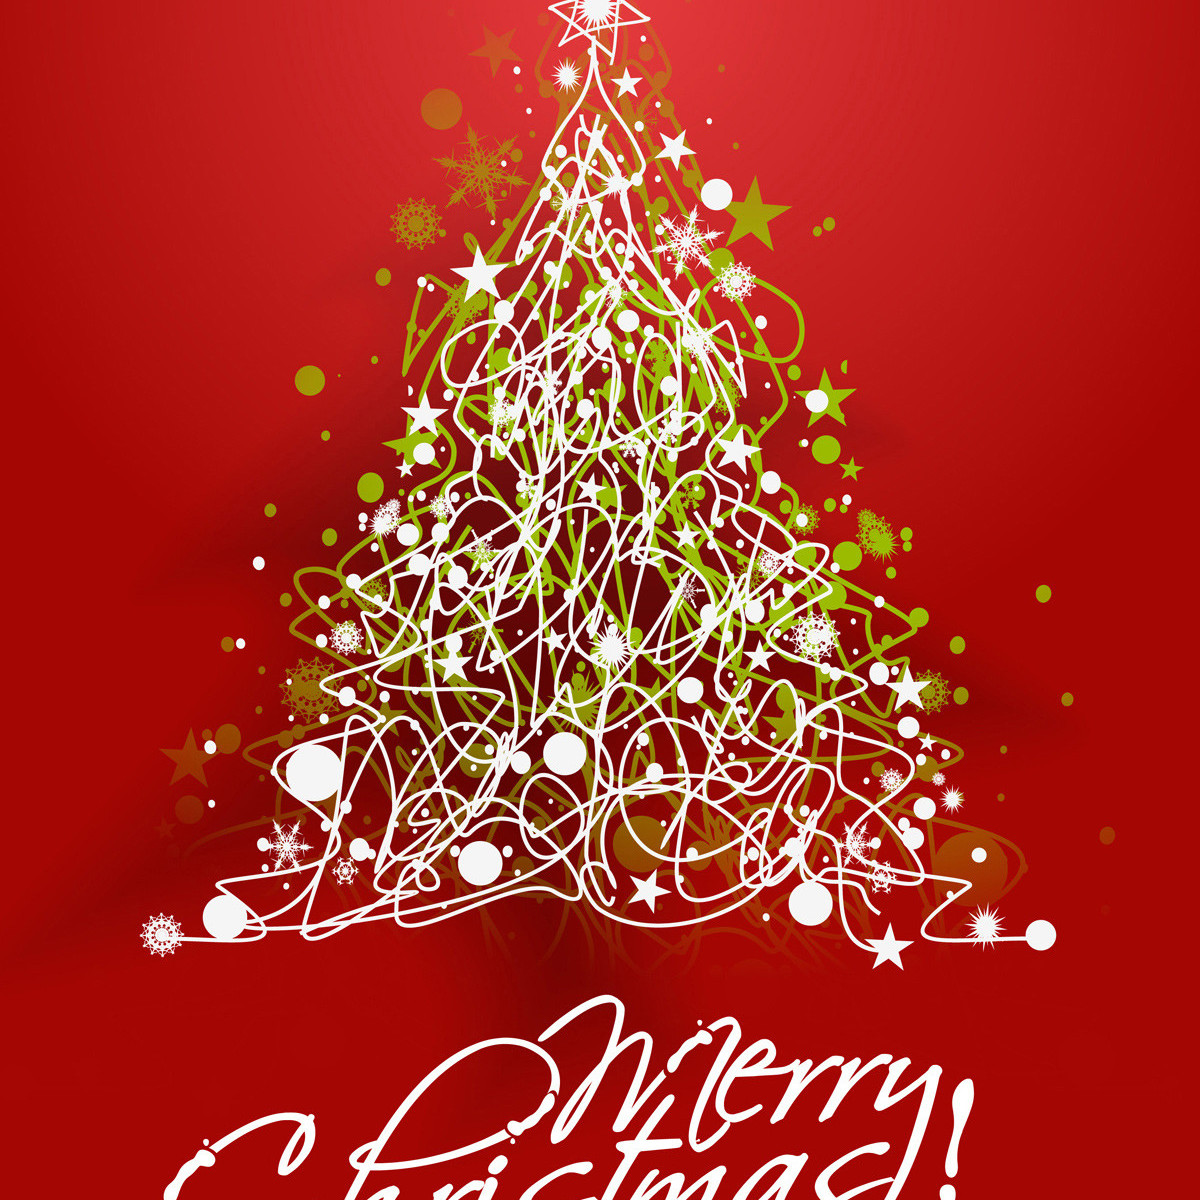 Merry Christmas Christmas Tree Red Beautiful The Mobile Wallpaper